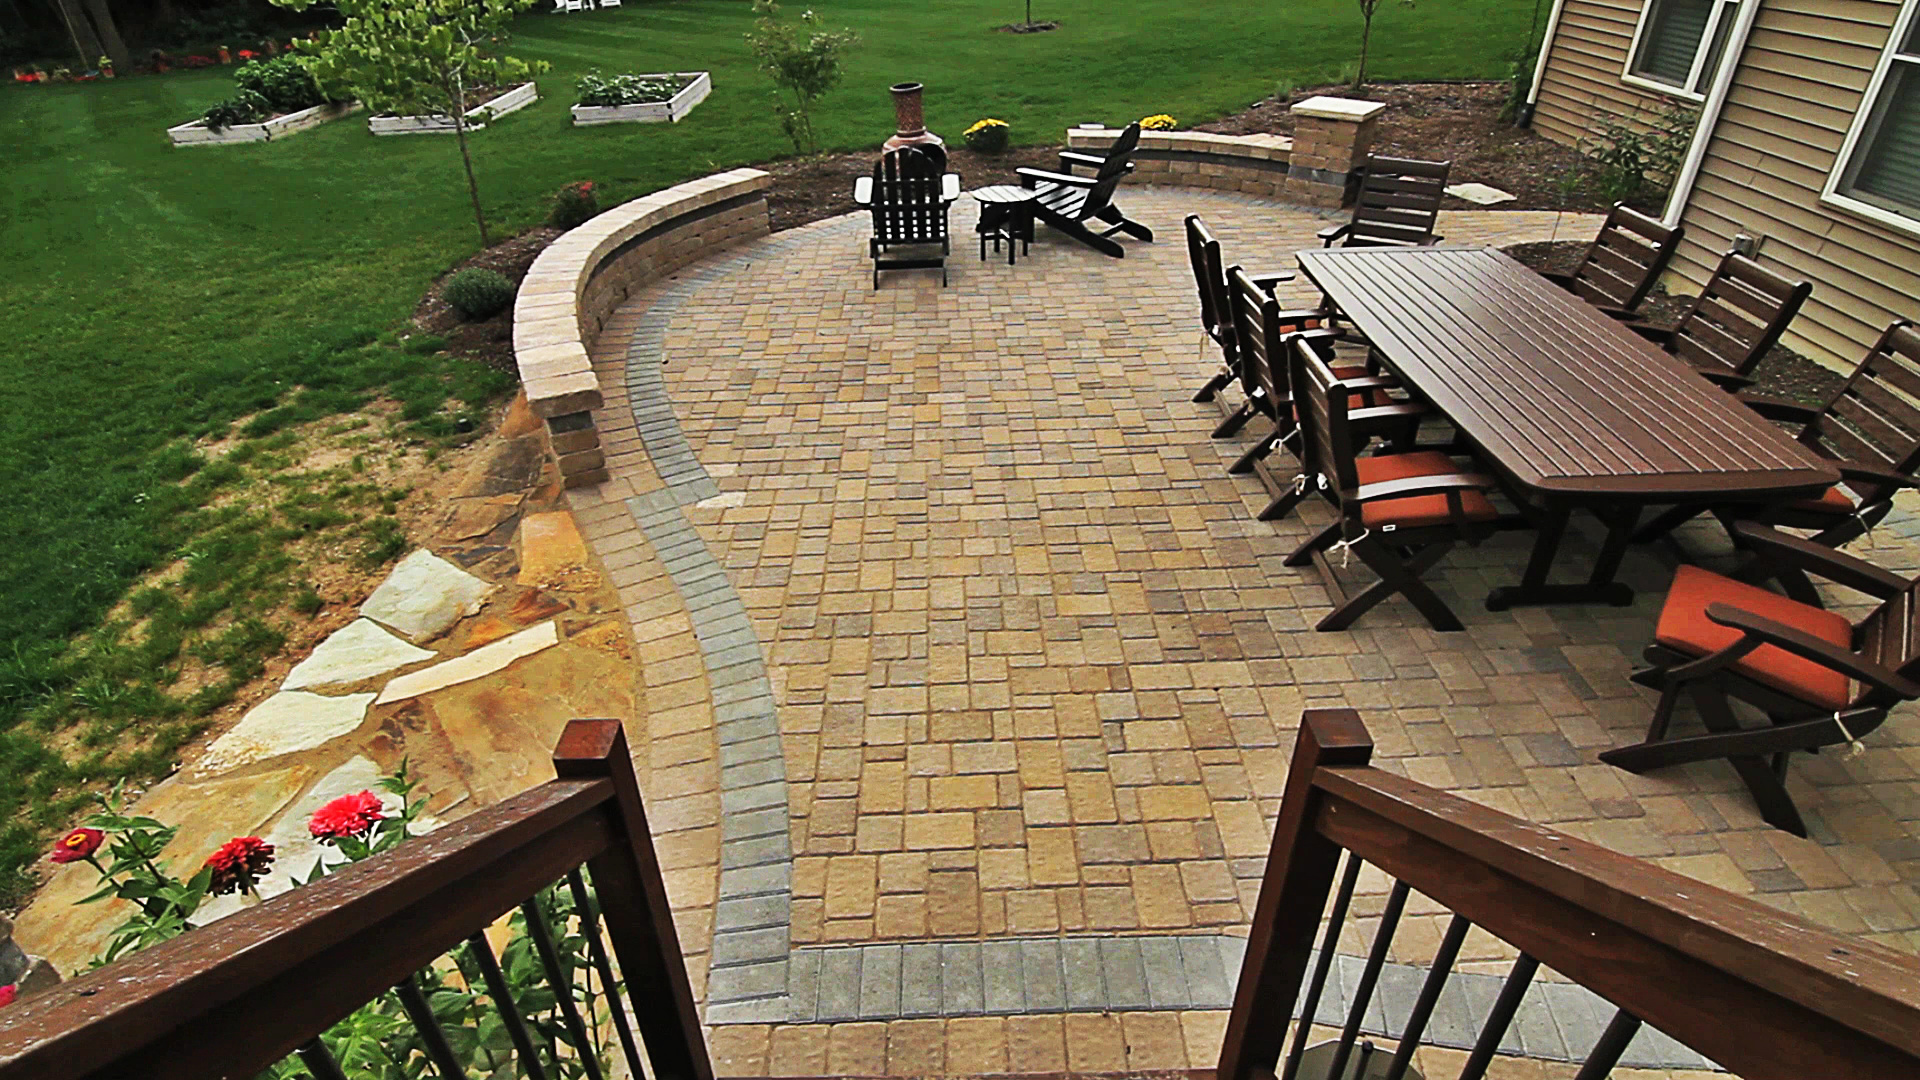 Paver Brick Patio- Backyard